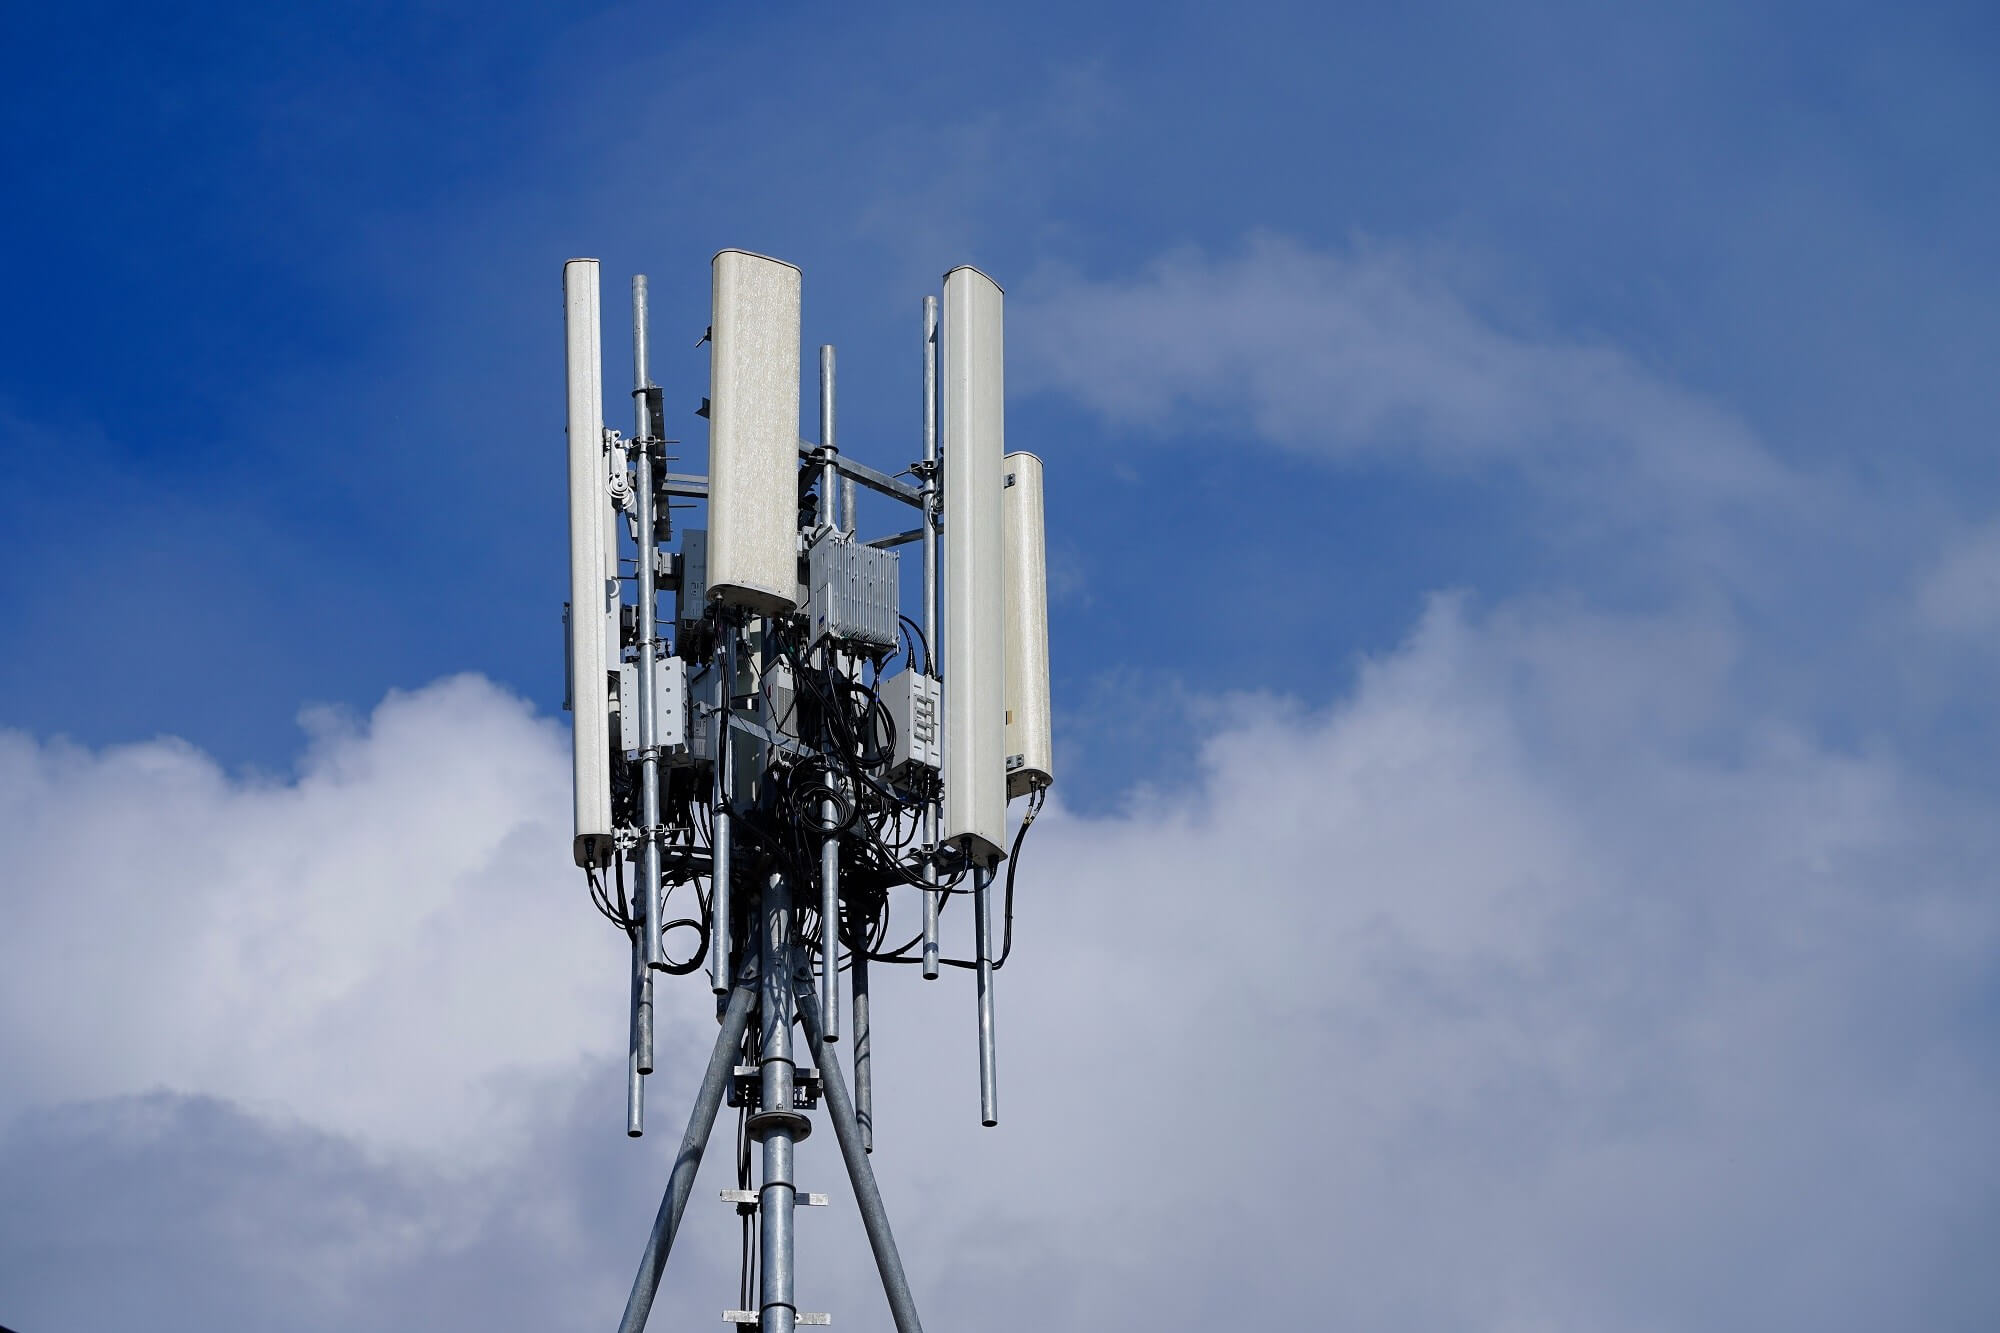 UK cell towers set on fire over 5G Covid-19 conspiracy theories